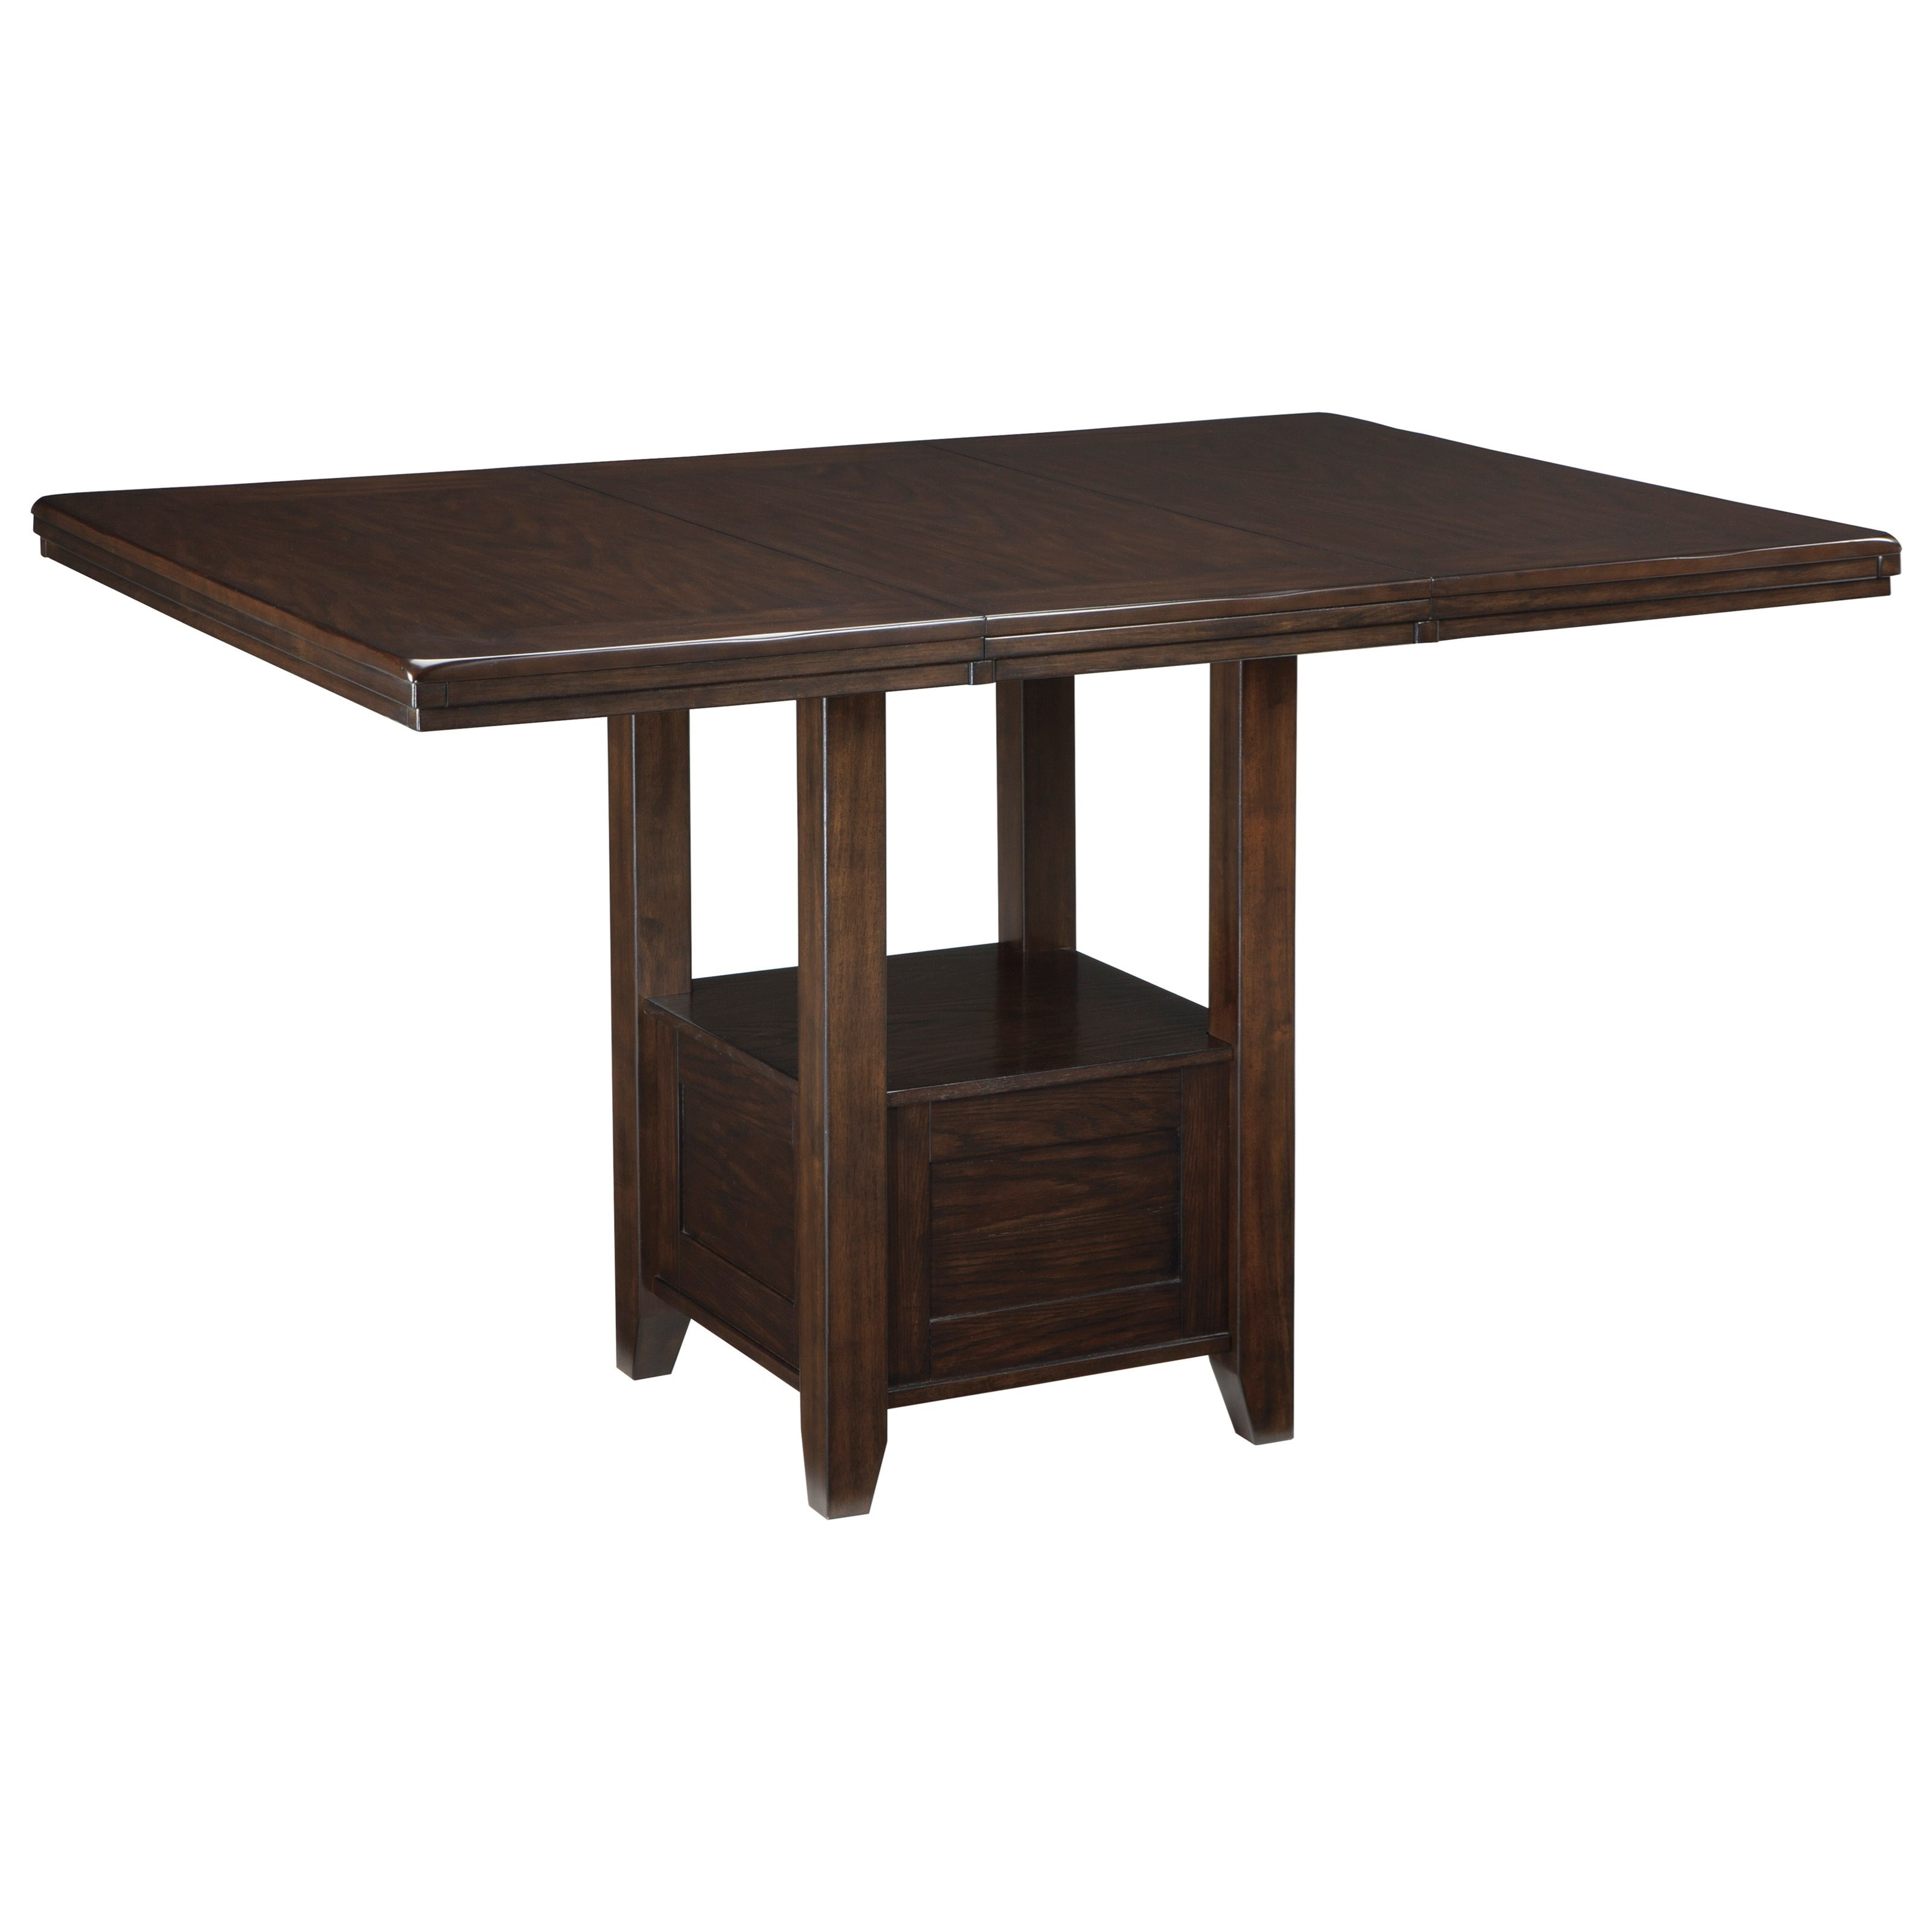 rectangular dining room extension table with shelf by signature design